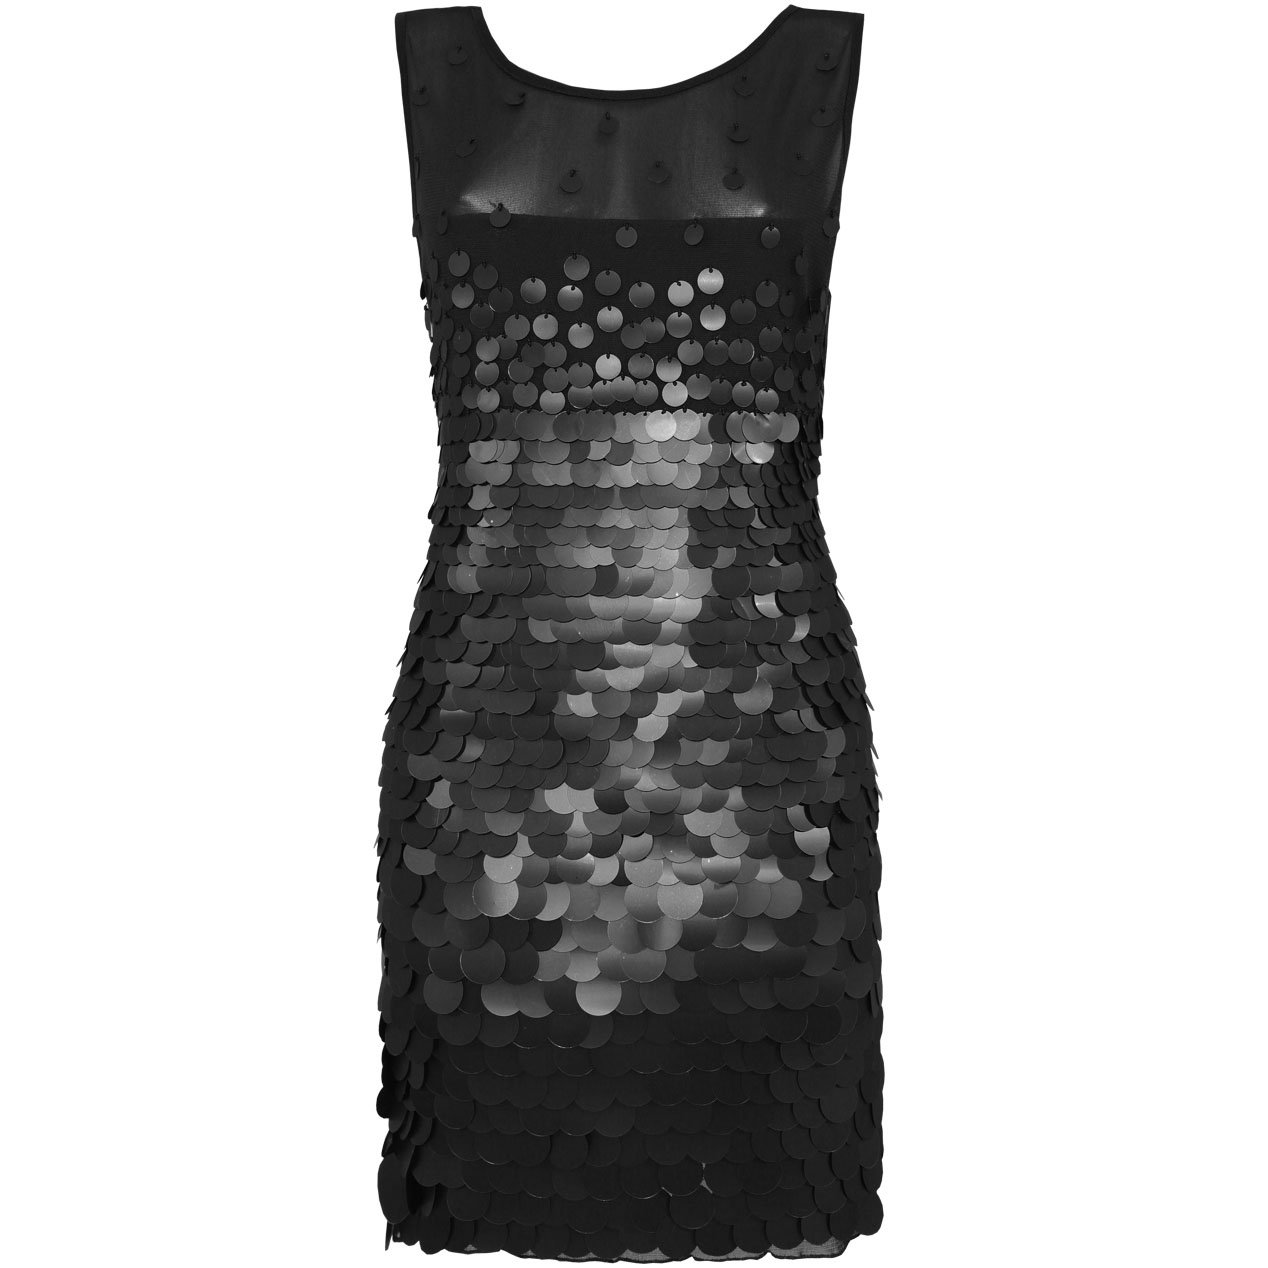 BLACK SEQUIN MESH BODYCON EVENING MINI COCKTAIL CLUBWEAR PARTY PROM DRESS UK SIZE 12-14, US 8-10